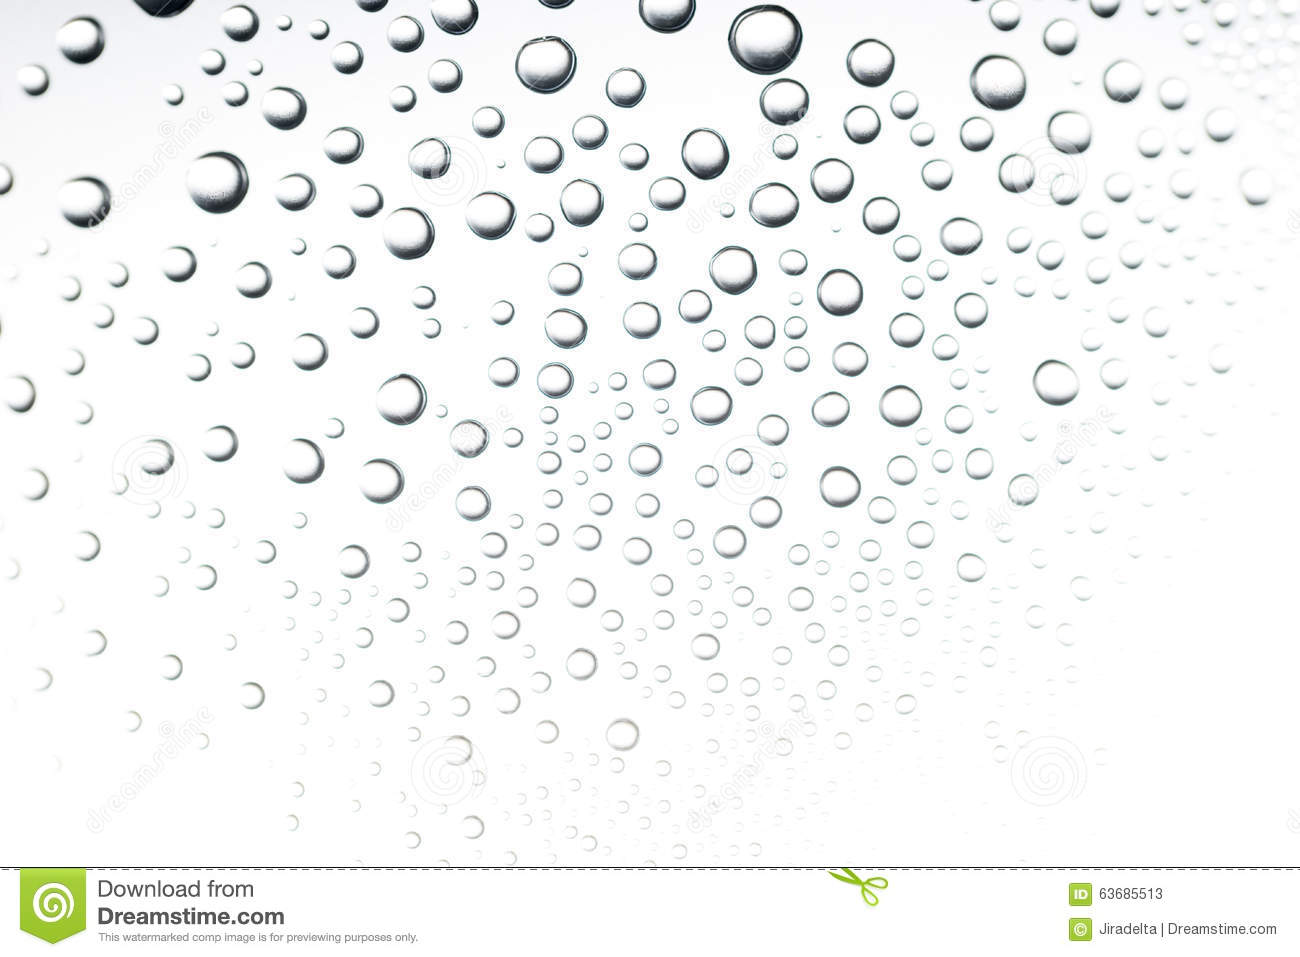 Water Droplets White Background | www.pixshark.com ...